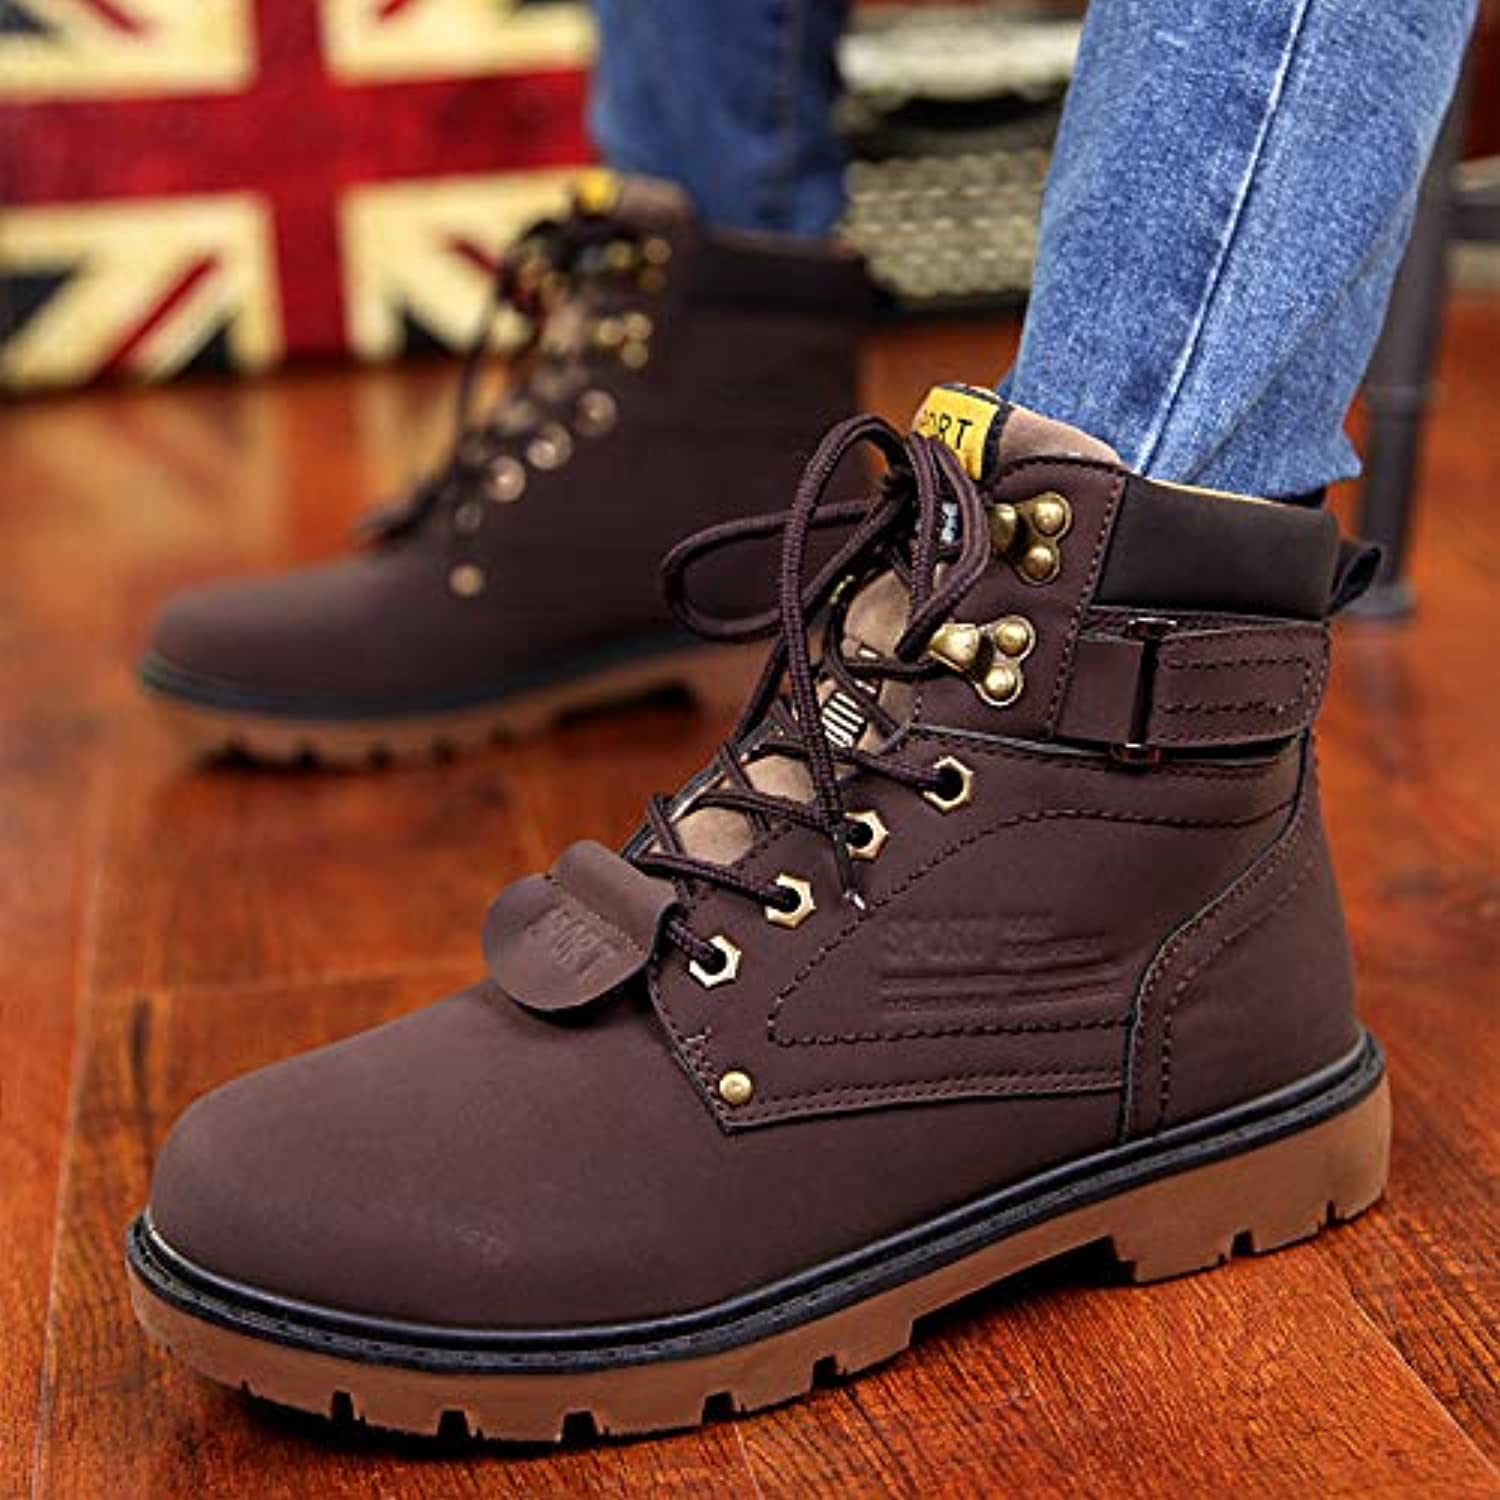 VXCZFS Outdoor boots Martin Boots Men'S Boots British Wind High shoes Men'S Tide Boots In The Winter Boots Plus Velvet, 43, Brown Cotton Boots